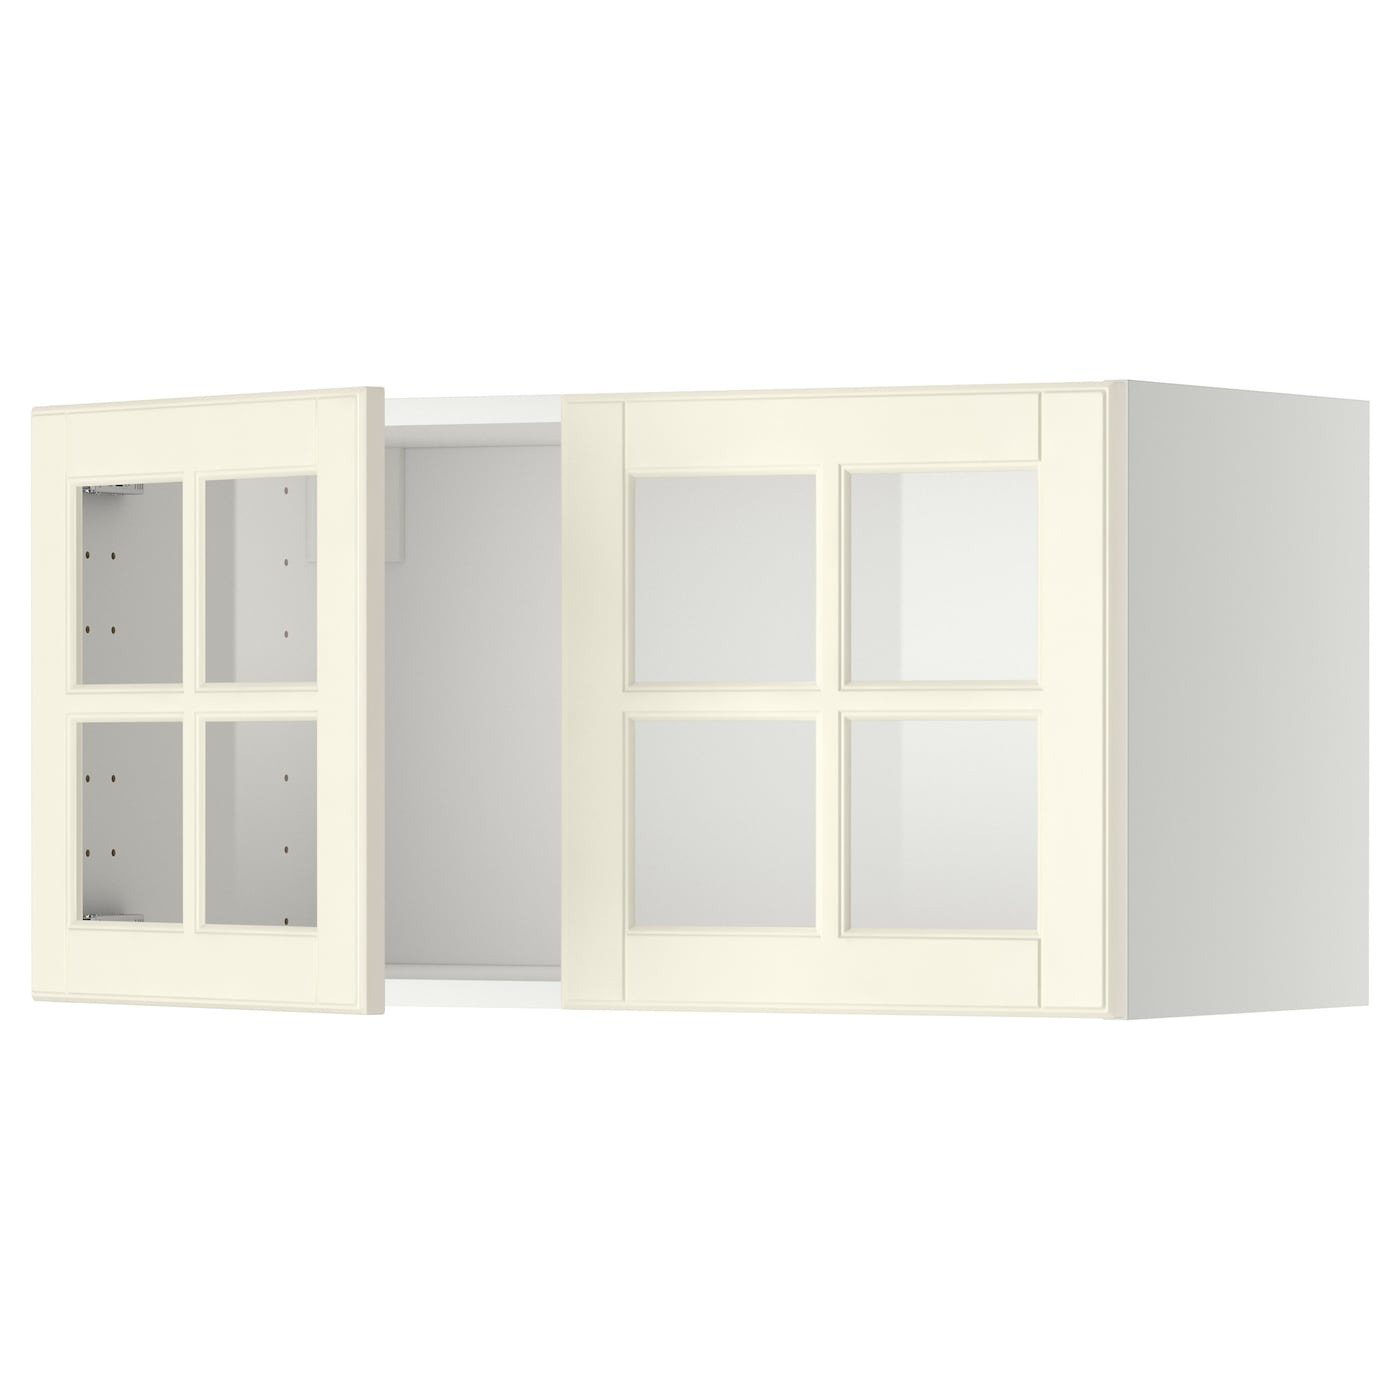 Metod wall cabinet with 2 glass doors white bodbyn off for Ikea glass door wall cabinet